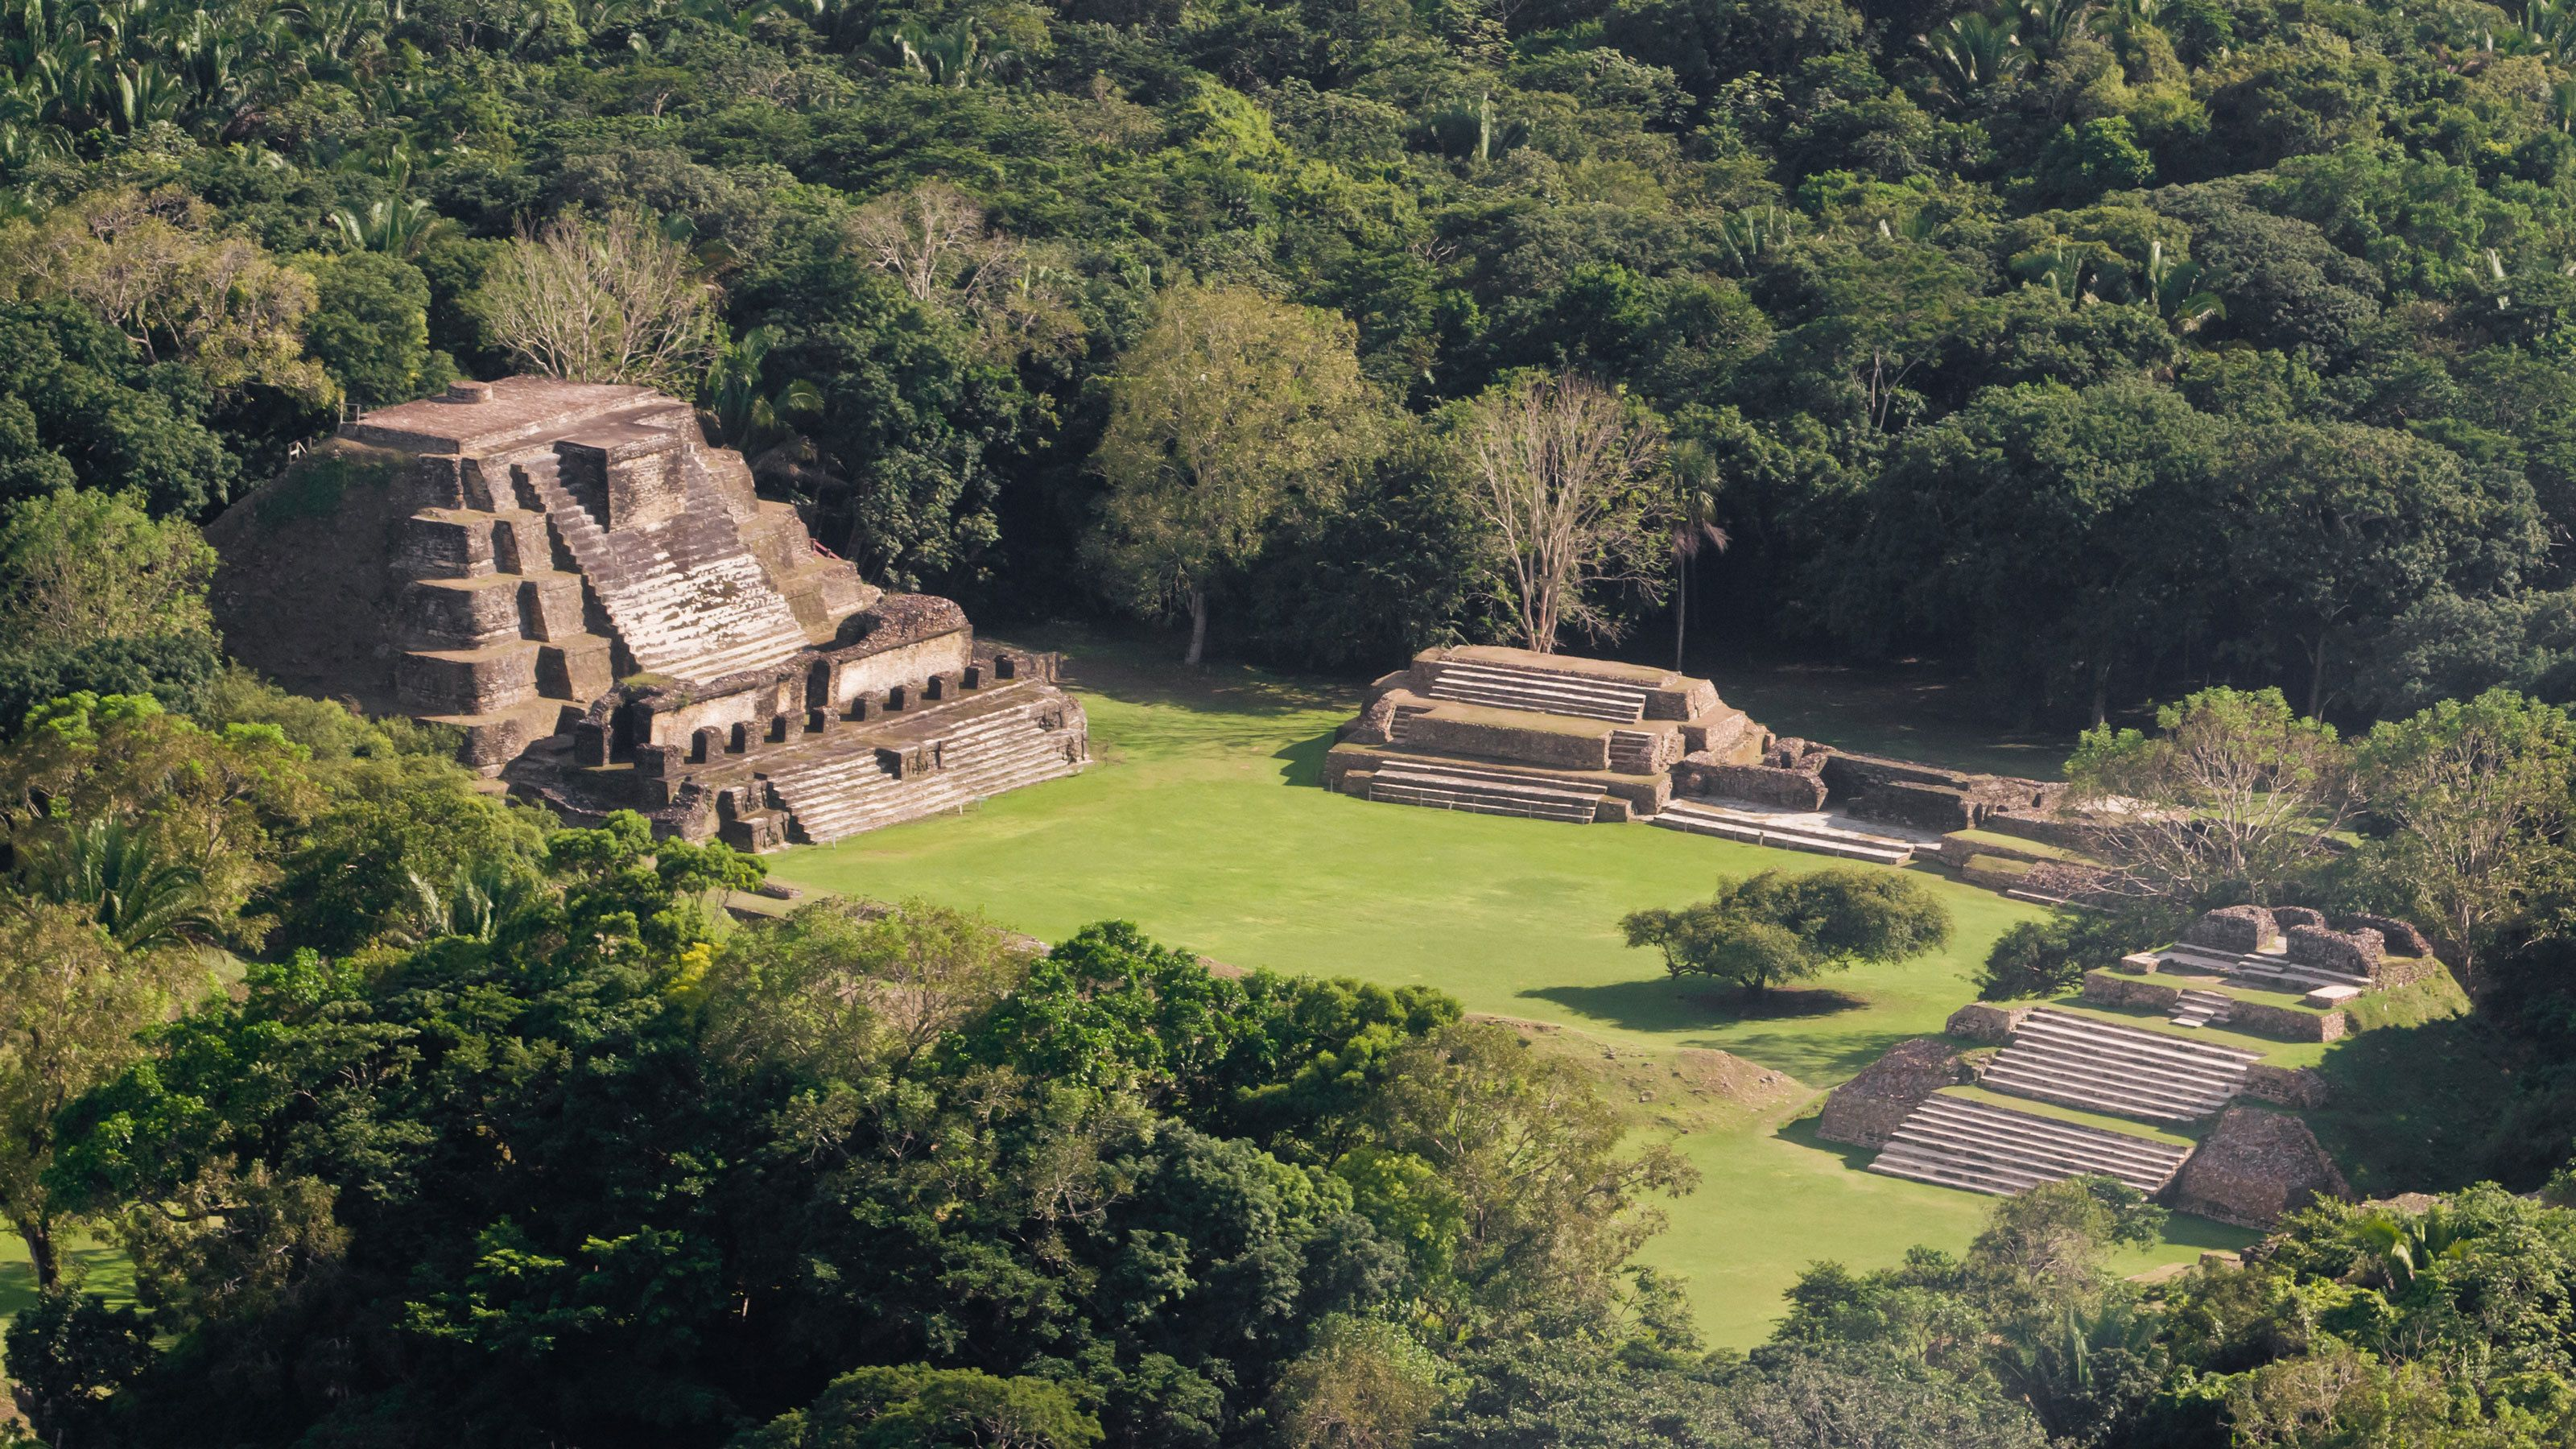 Beautiful view of the Altun Ha Maya Site in Belize